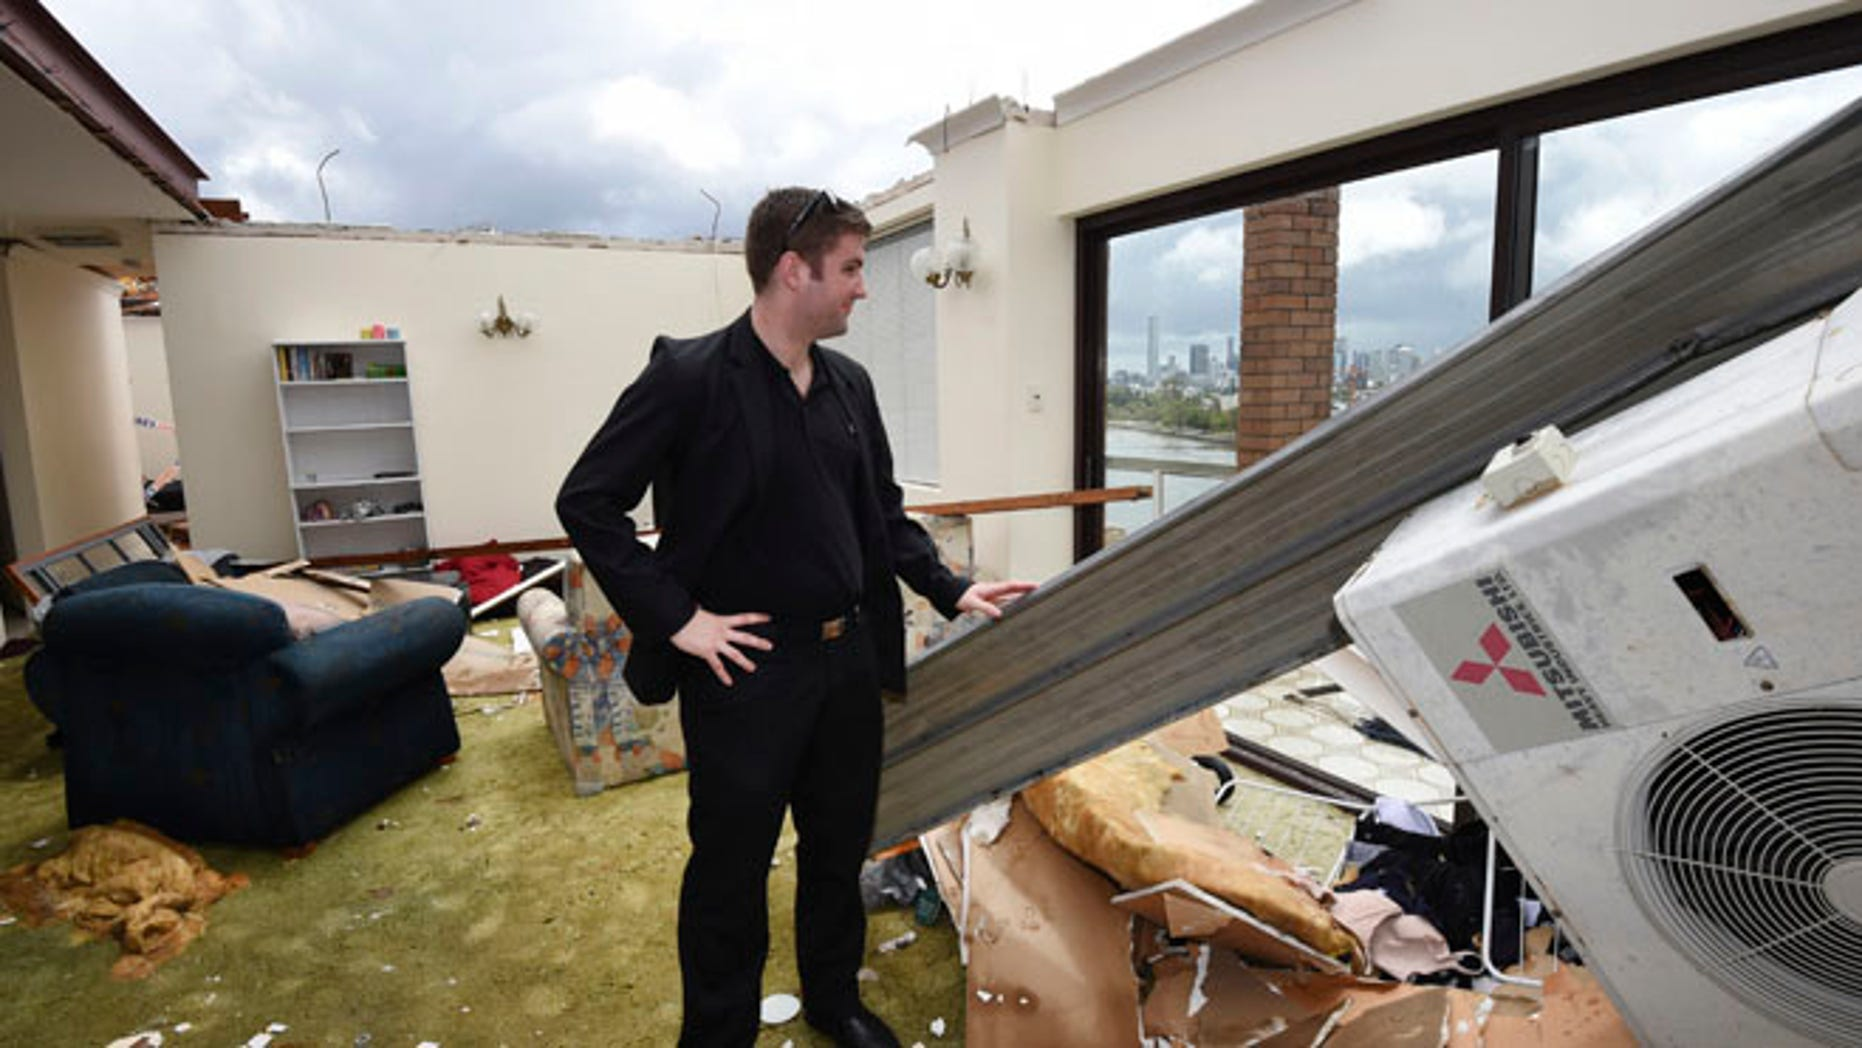 Nov. 28, 2014: James Marriott surveys the damage in his roofless apartment in the inner city suburb of Toowong in Brisbane, Australia, after a severe thunderstorm swept through the city. (AP)